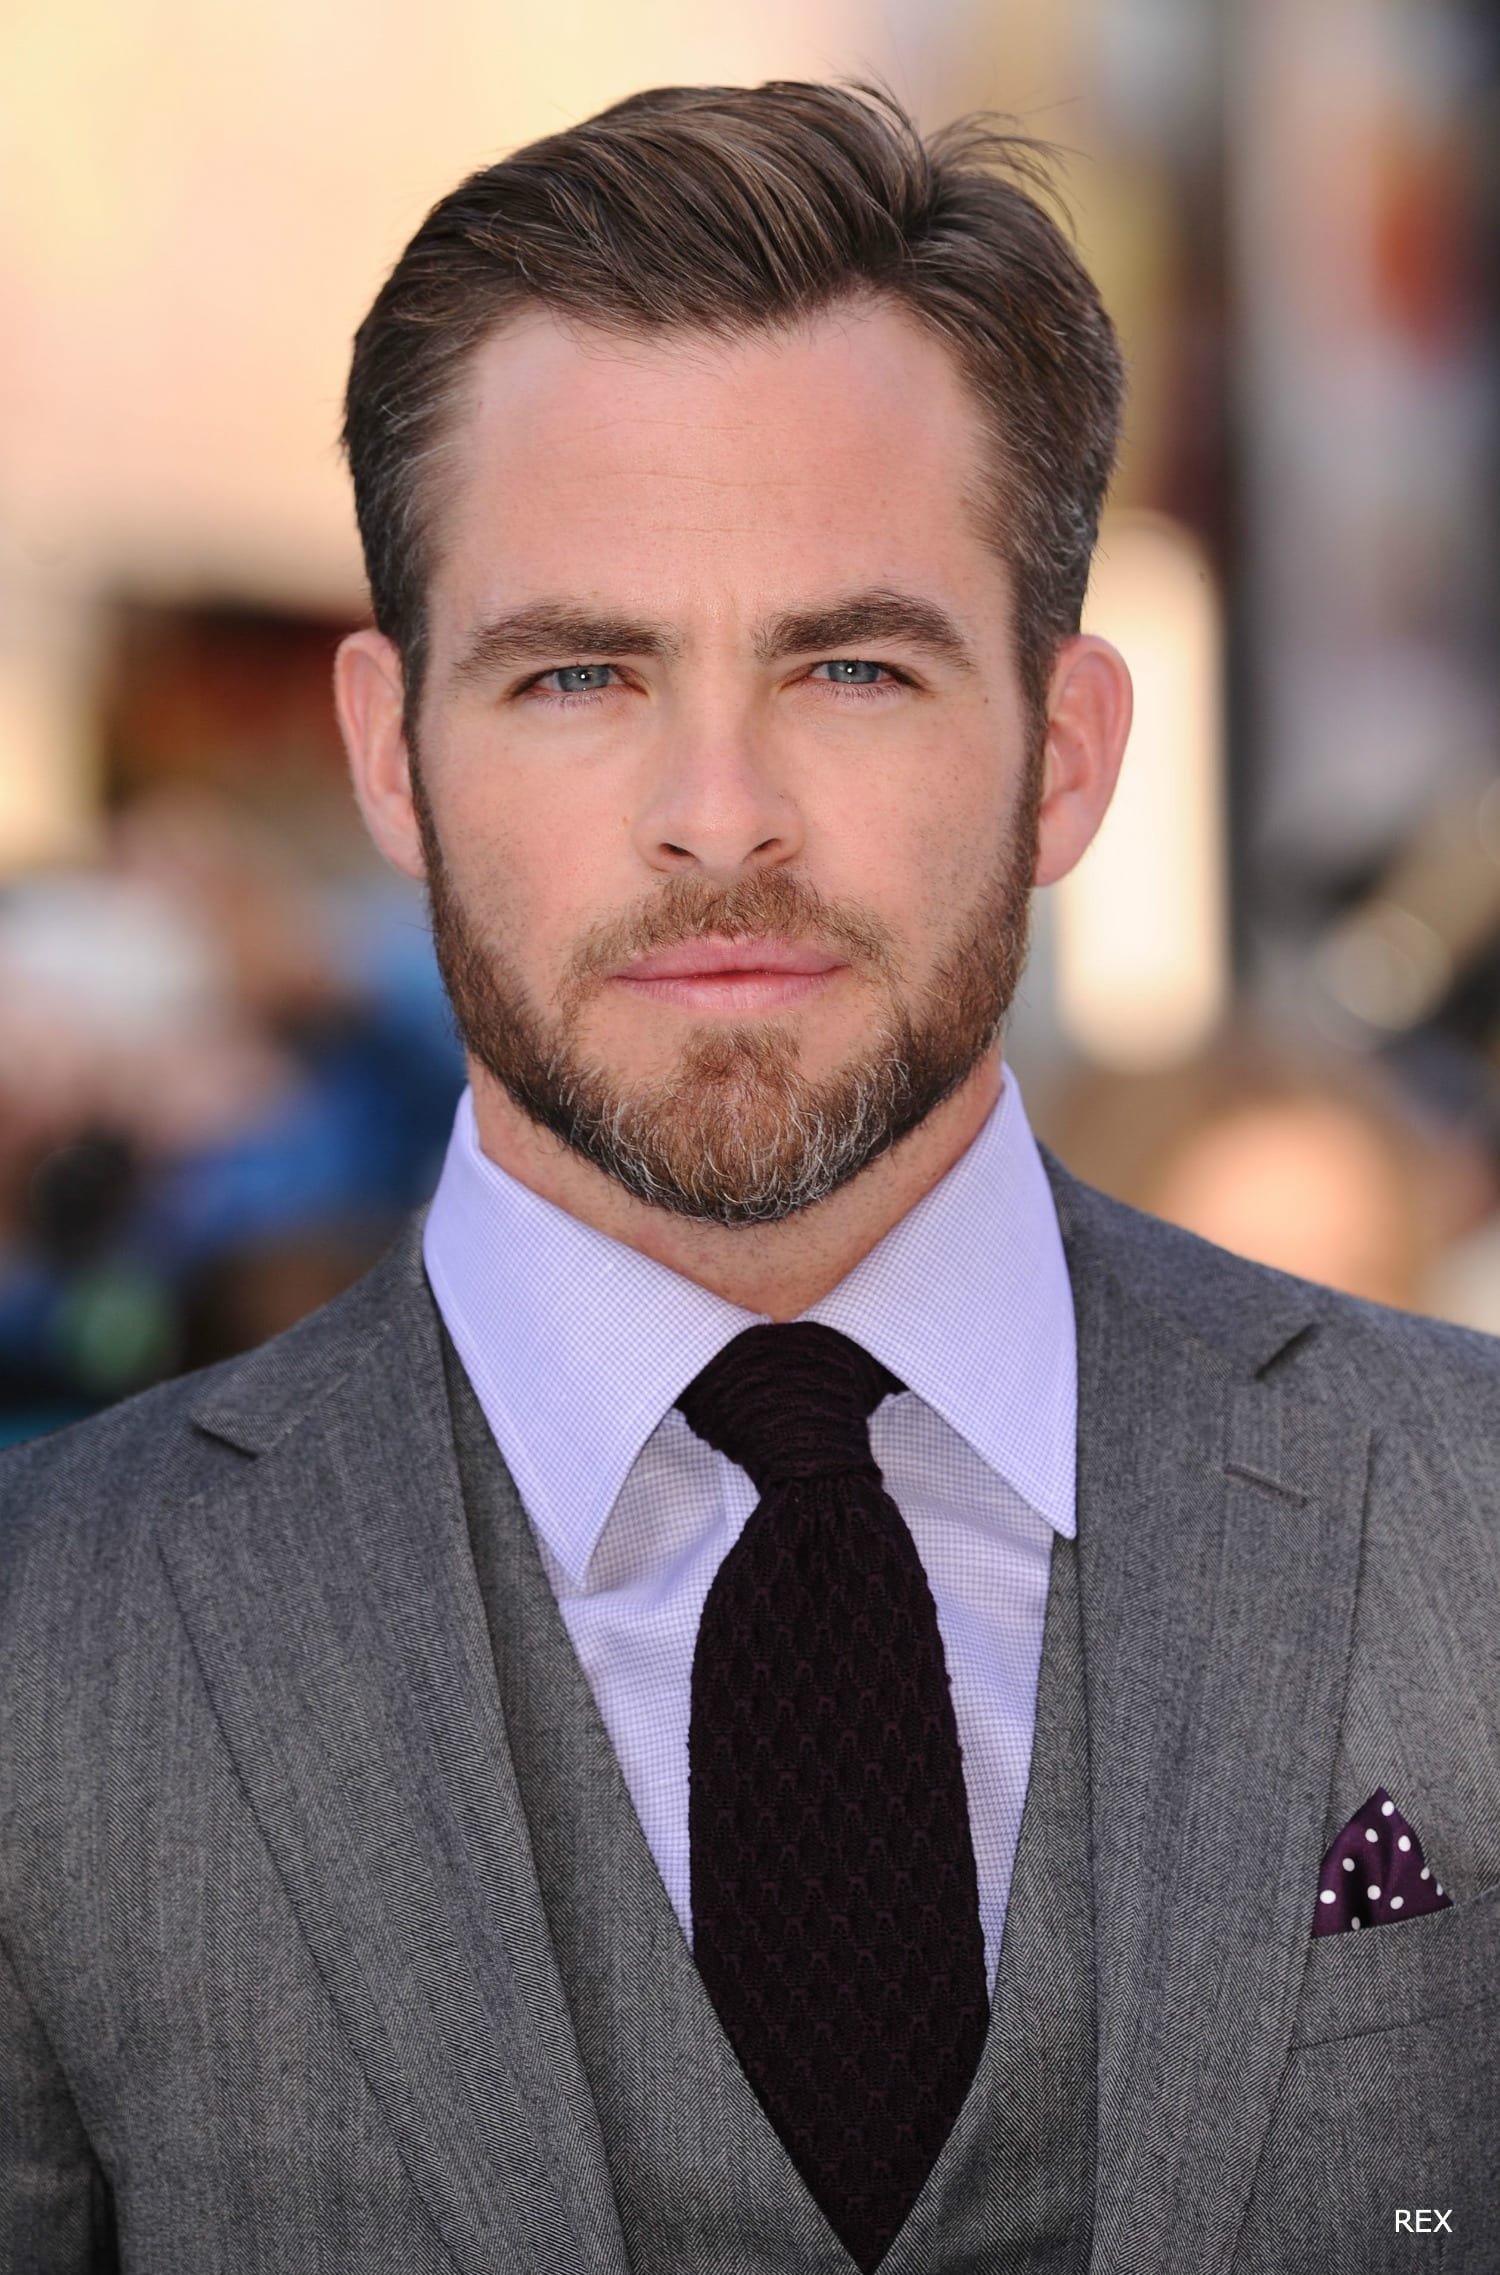 Male Hairstyles: Top 10 Cool Trends For 2014 | Beauty and ...